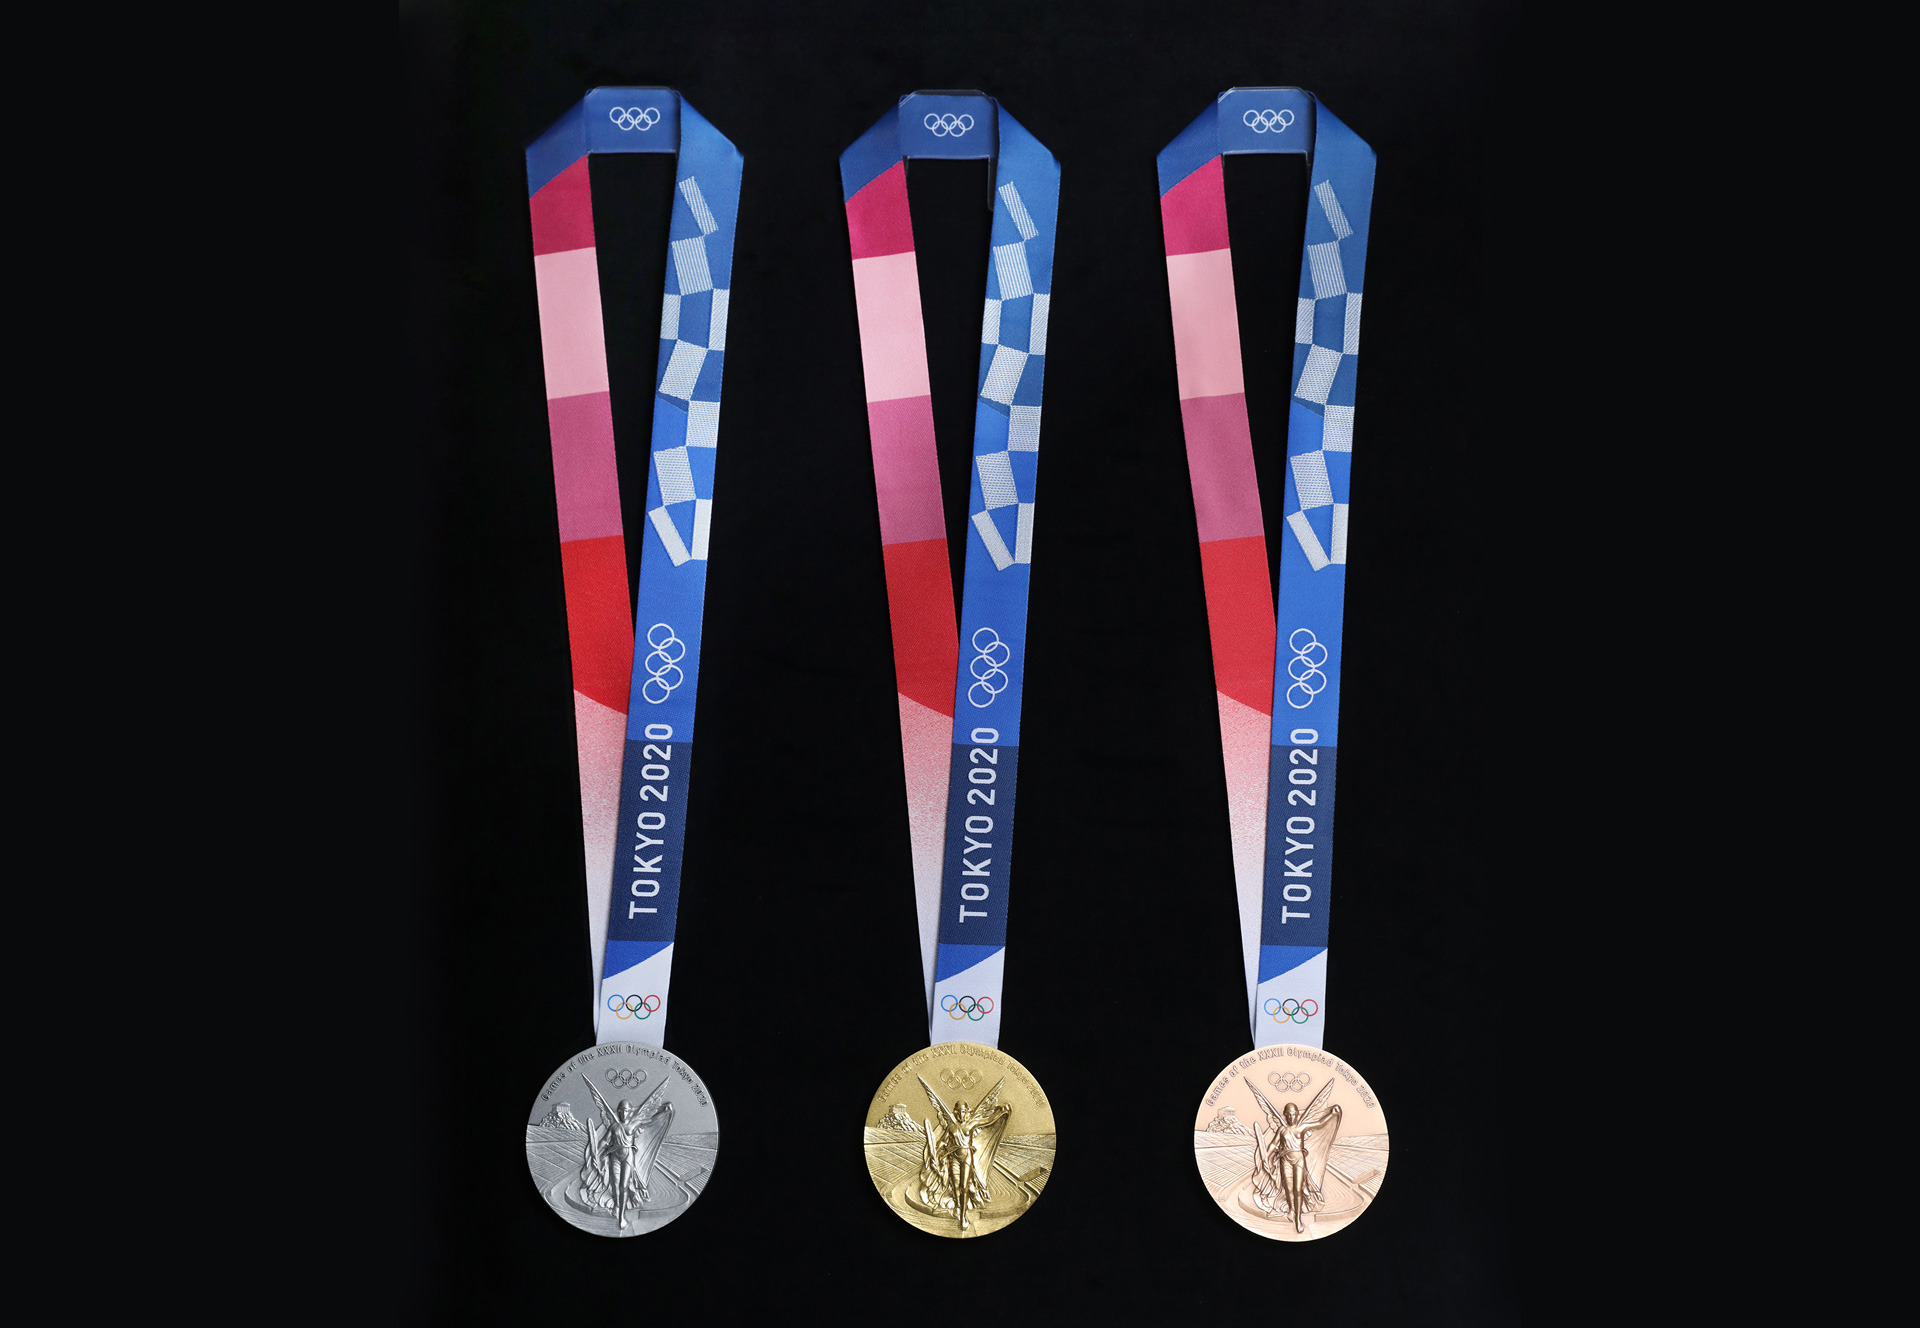 Tokyo 2020 Olympic medals (obverse)| Olympic Games| Tokyo 2020 | STIR